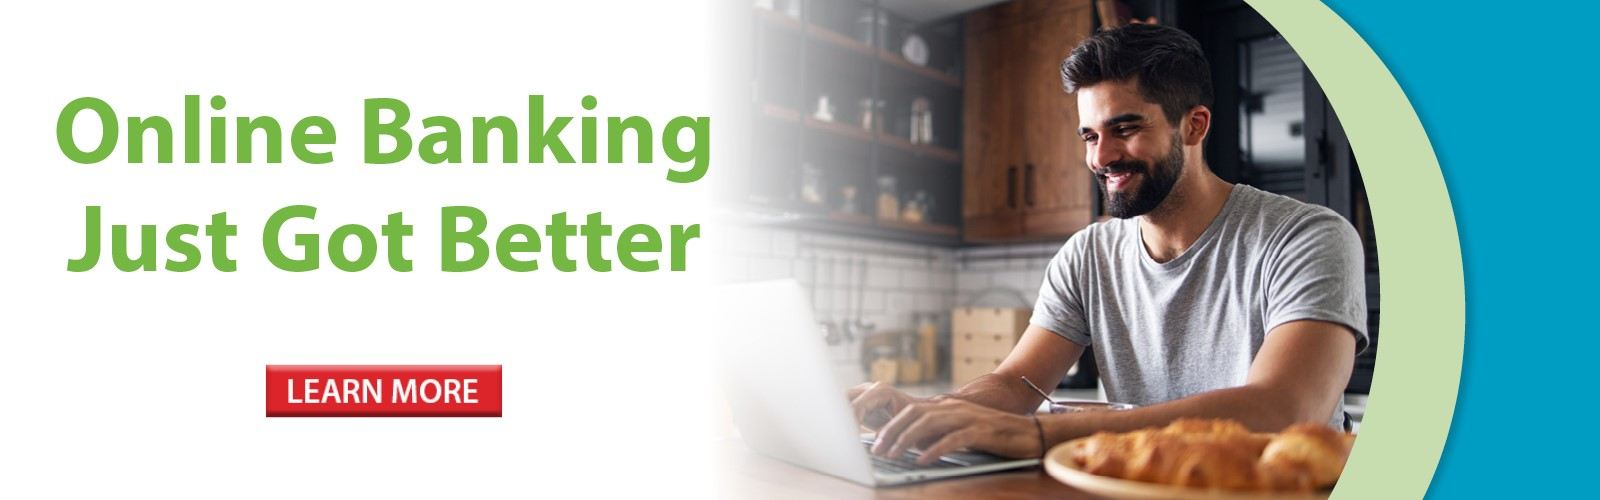 Online Banking Just Got Better! Click here to learn more!